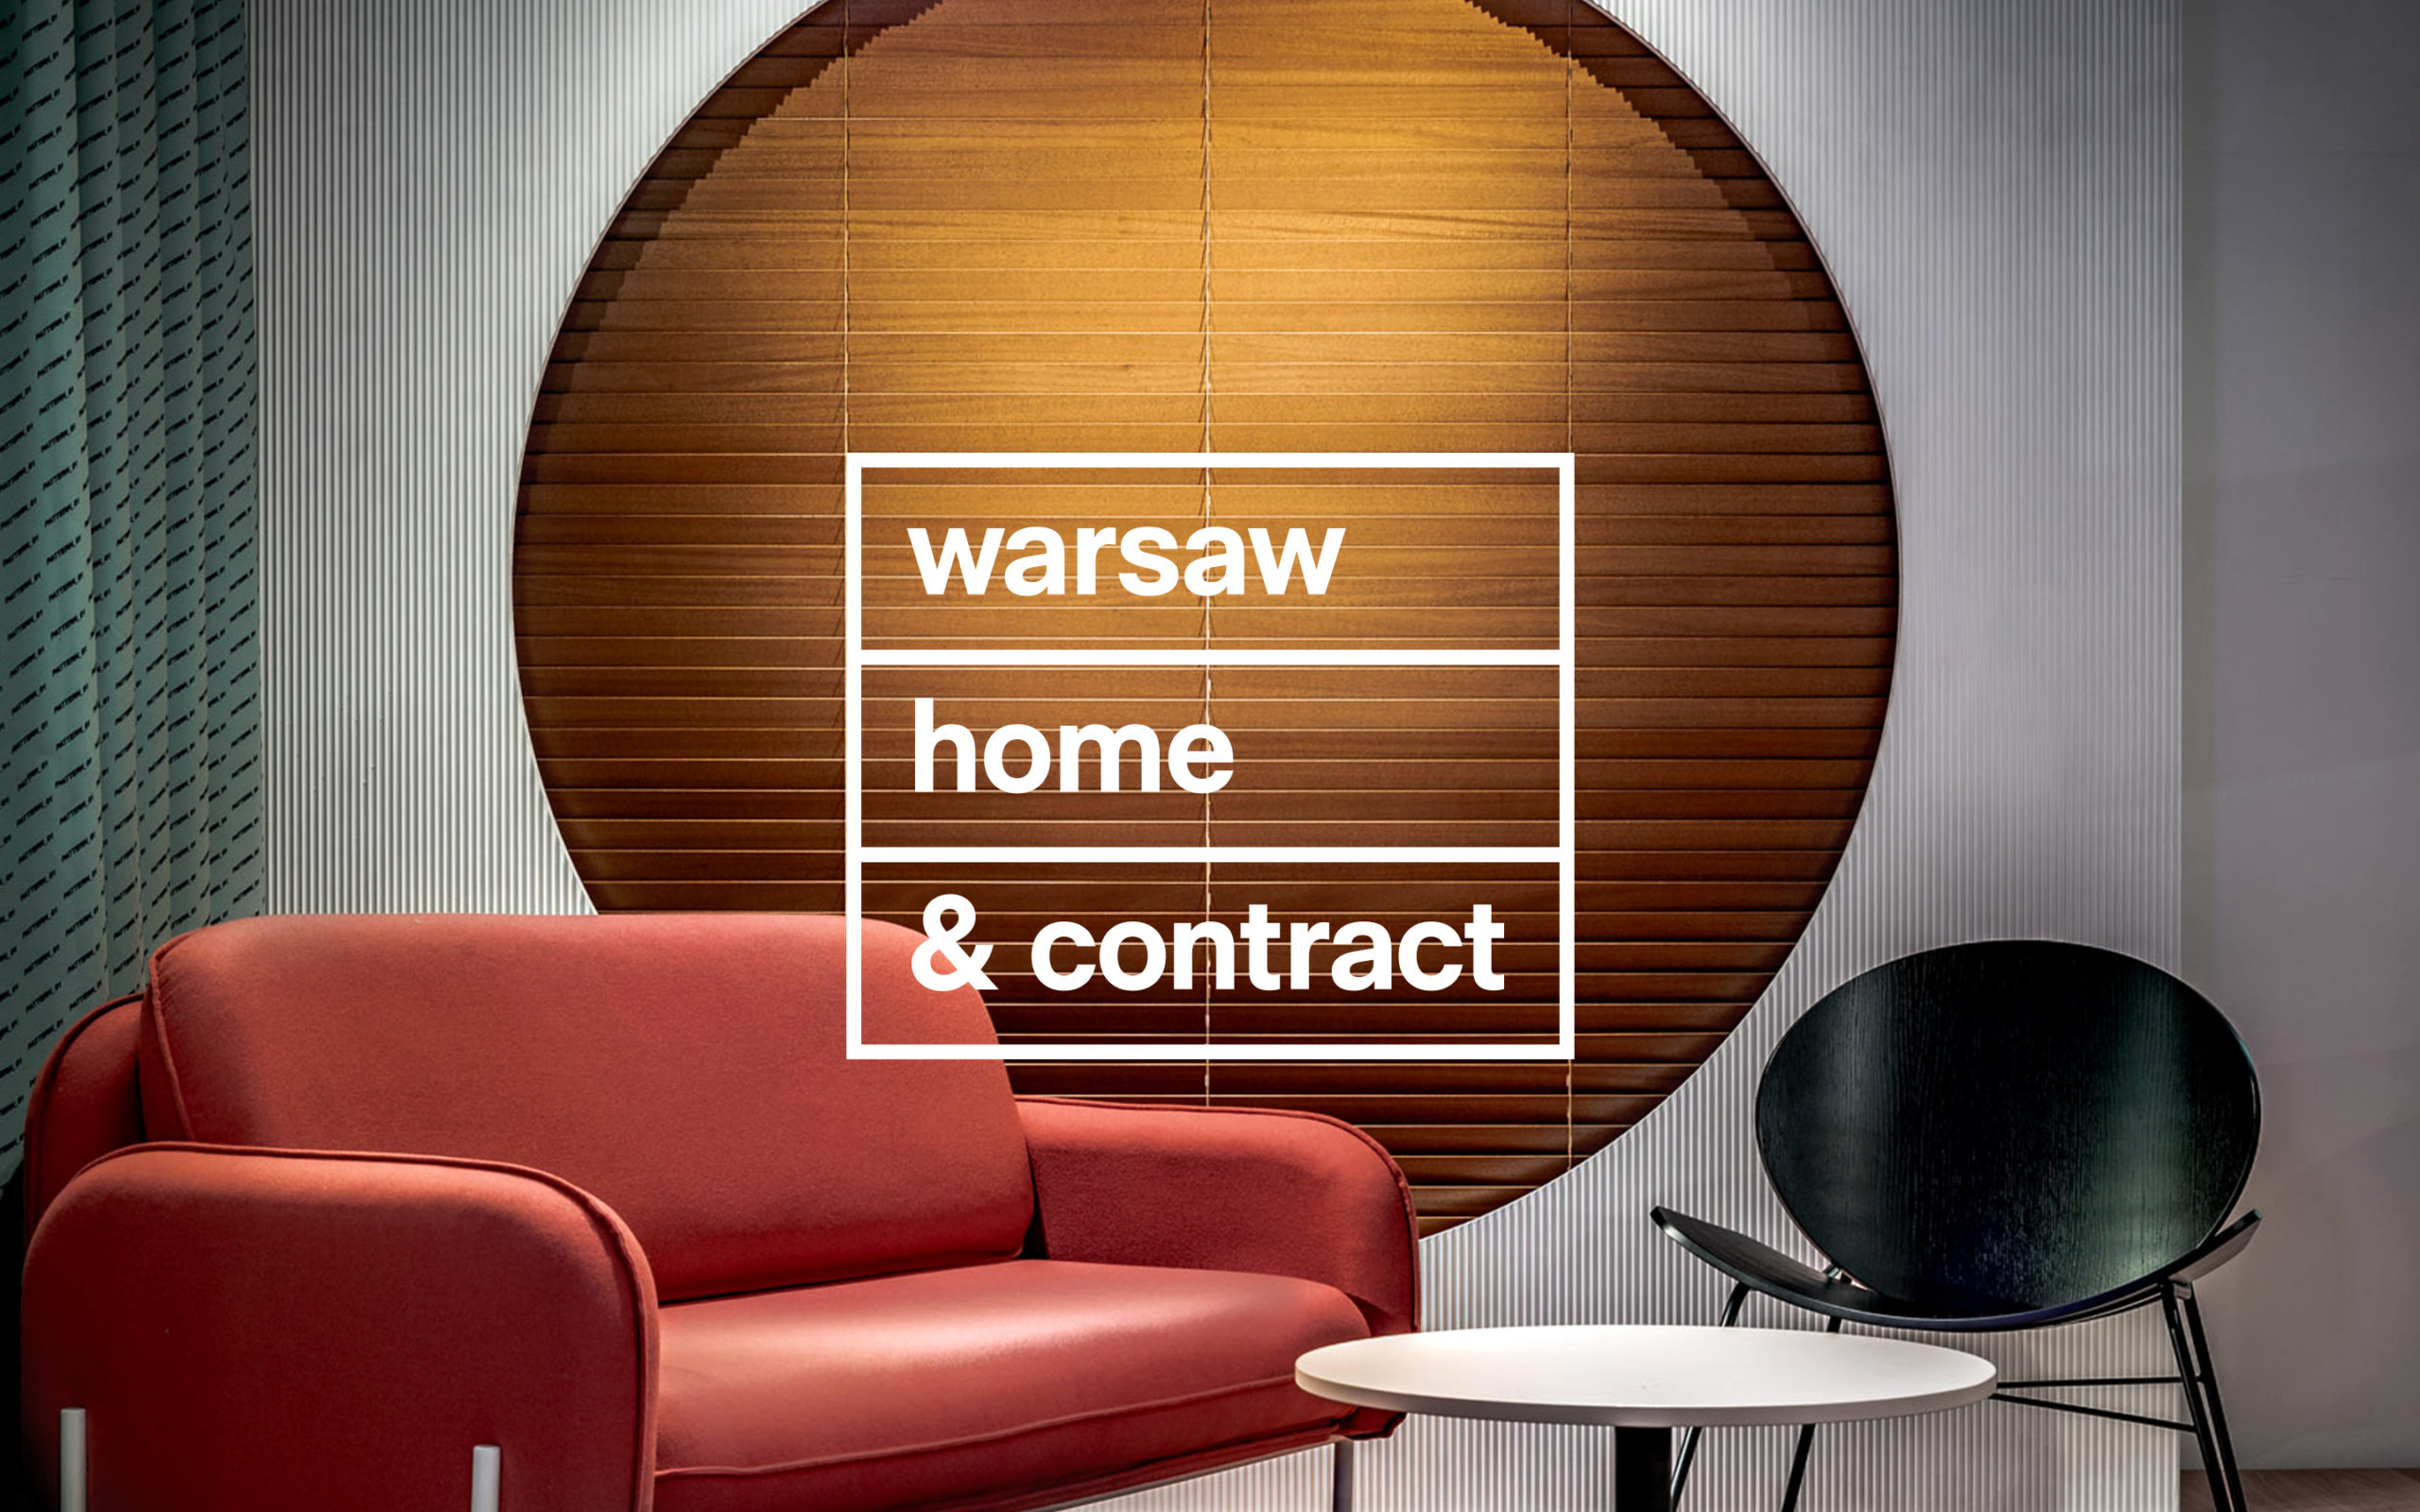 Warsaw Home and Contract 2021